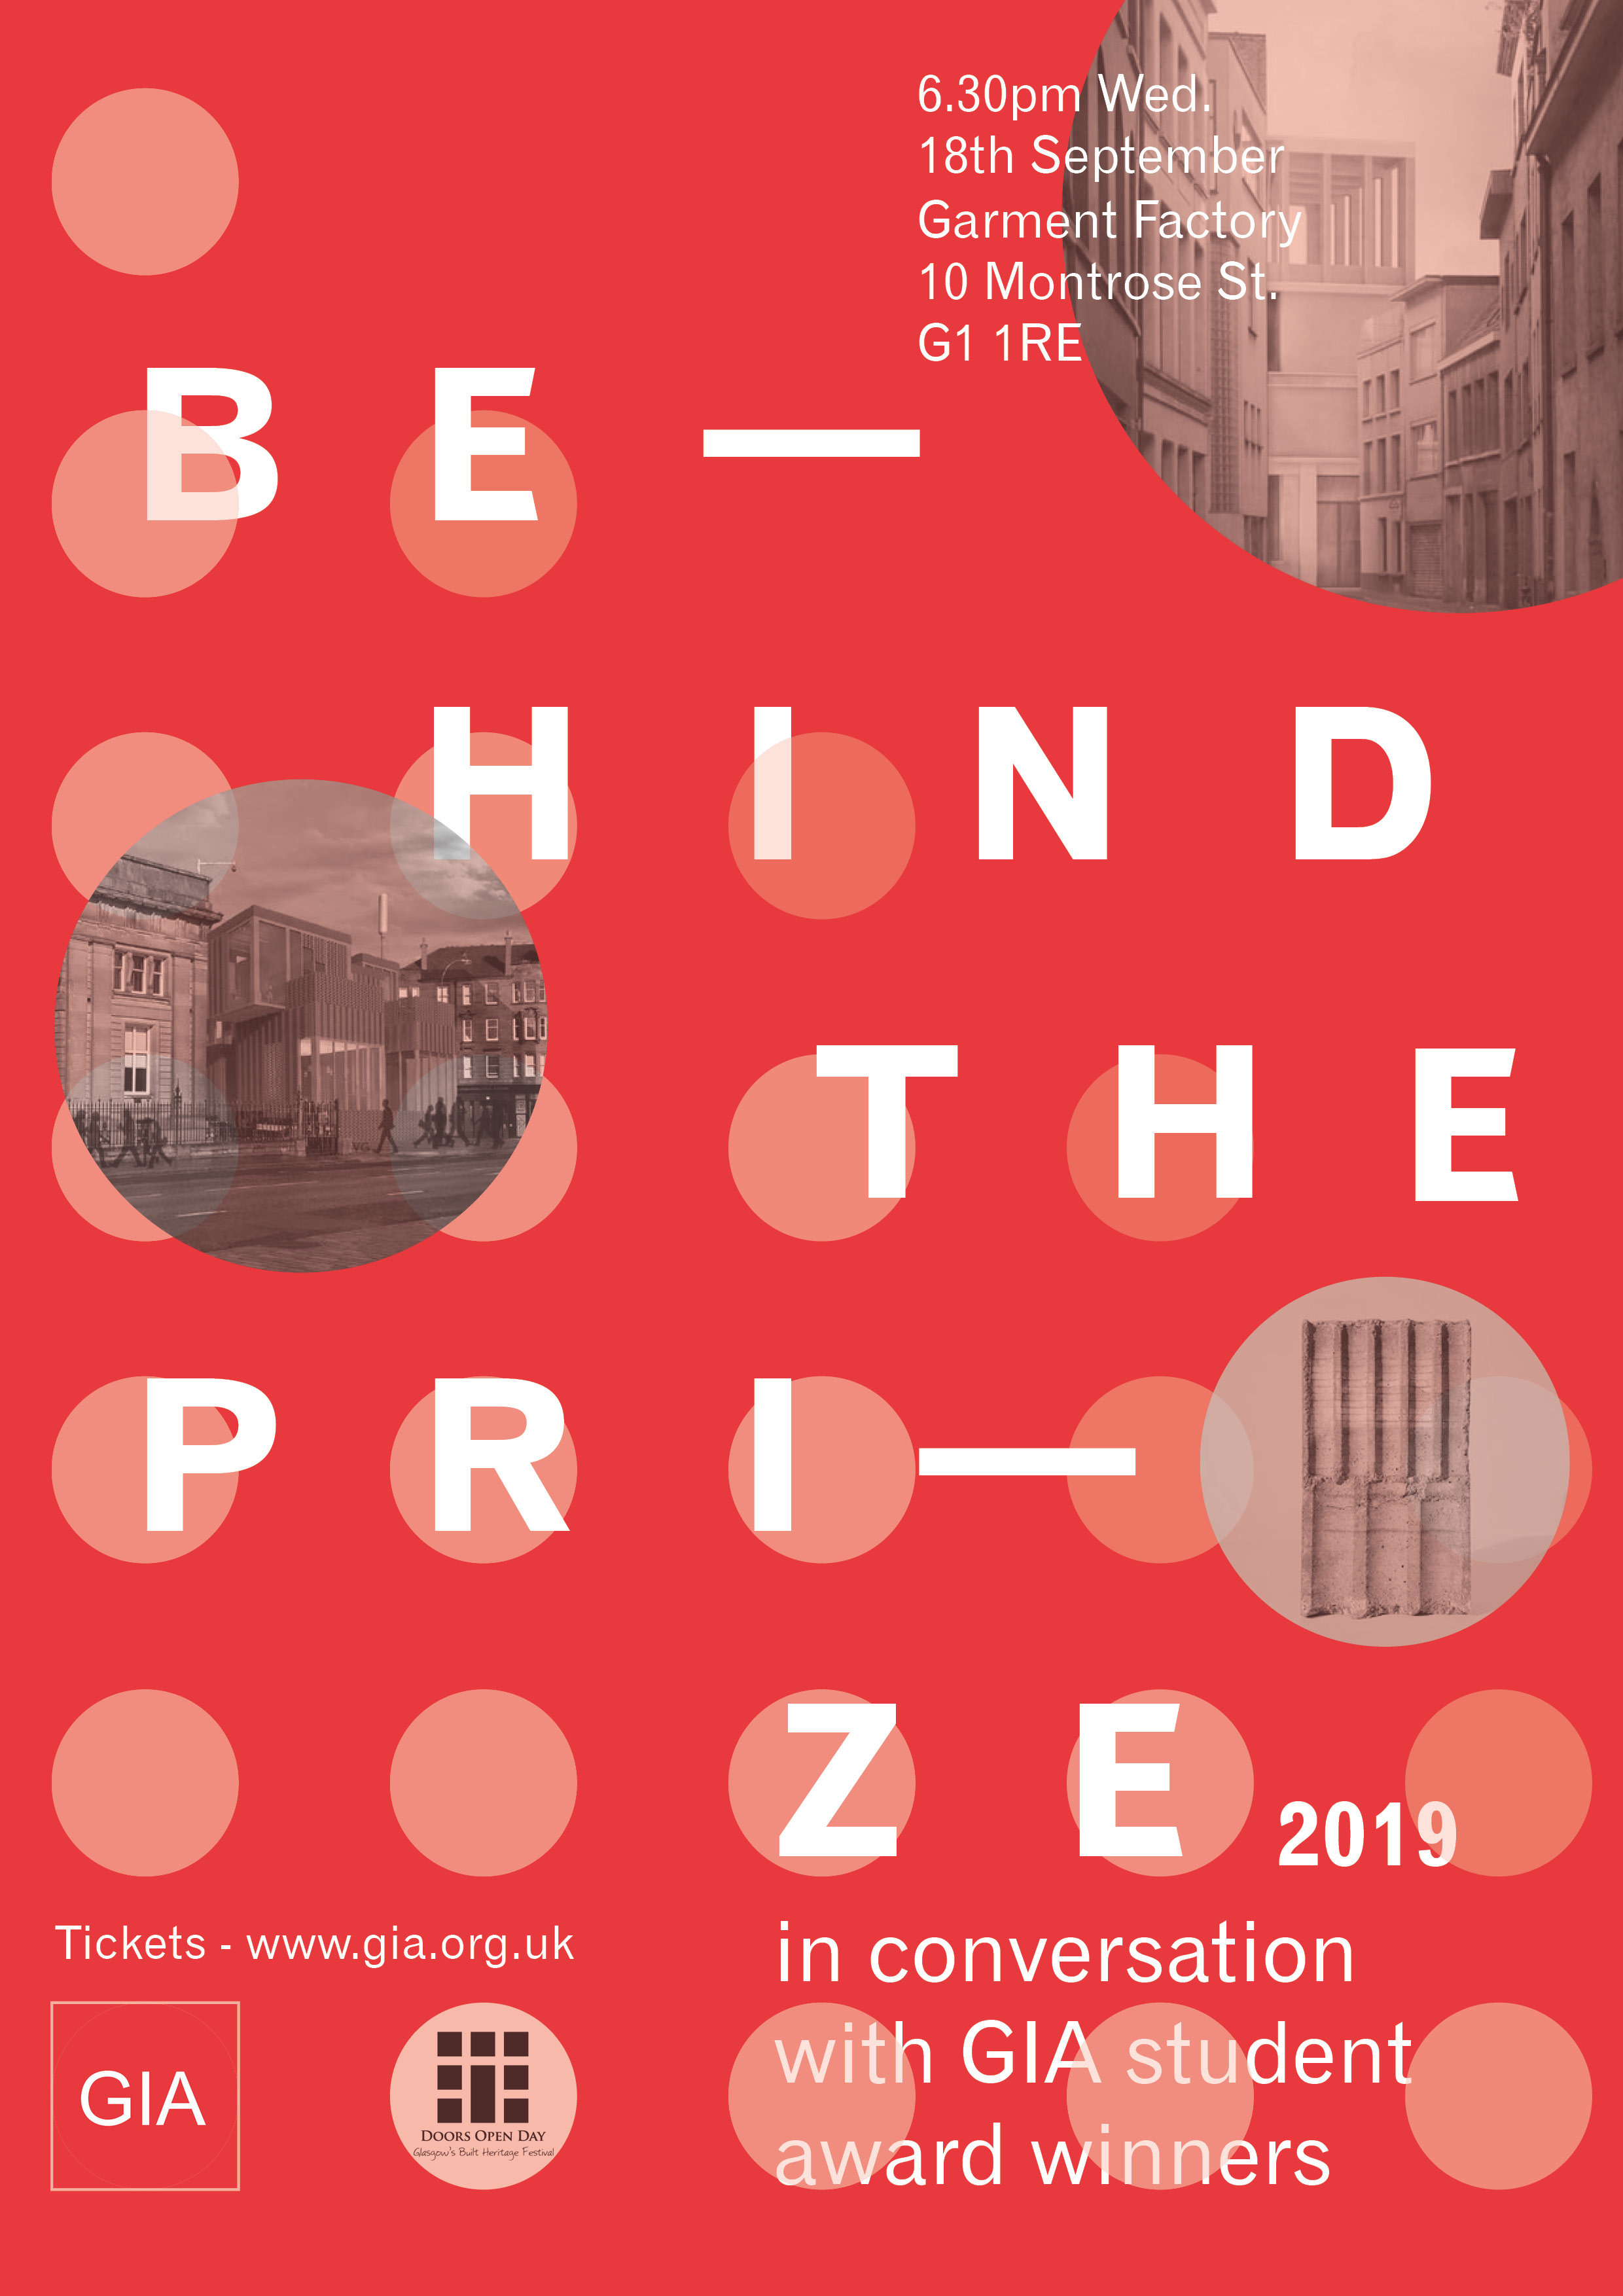 BEHIND THE PRIZE - IN CONVERSATION WITH GIA STUDENT AWARD WINNERS